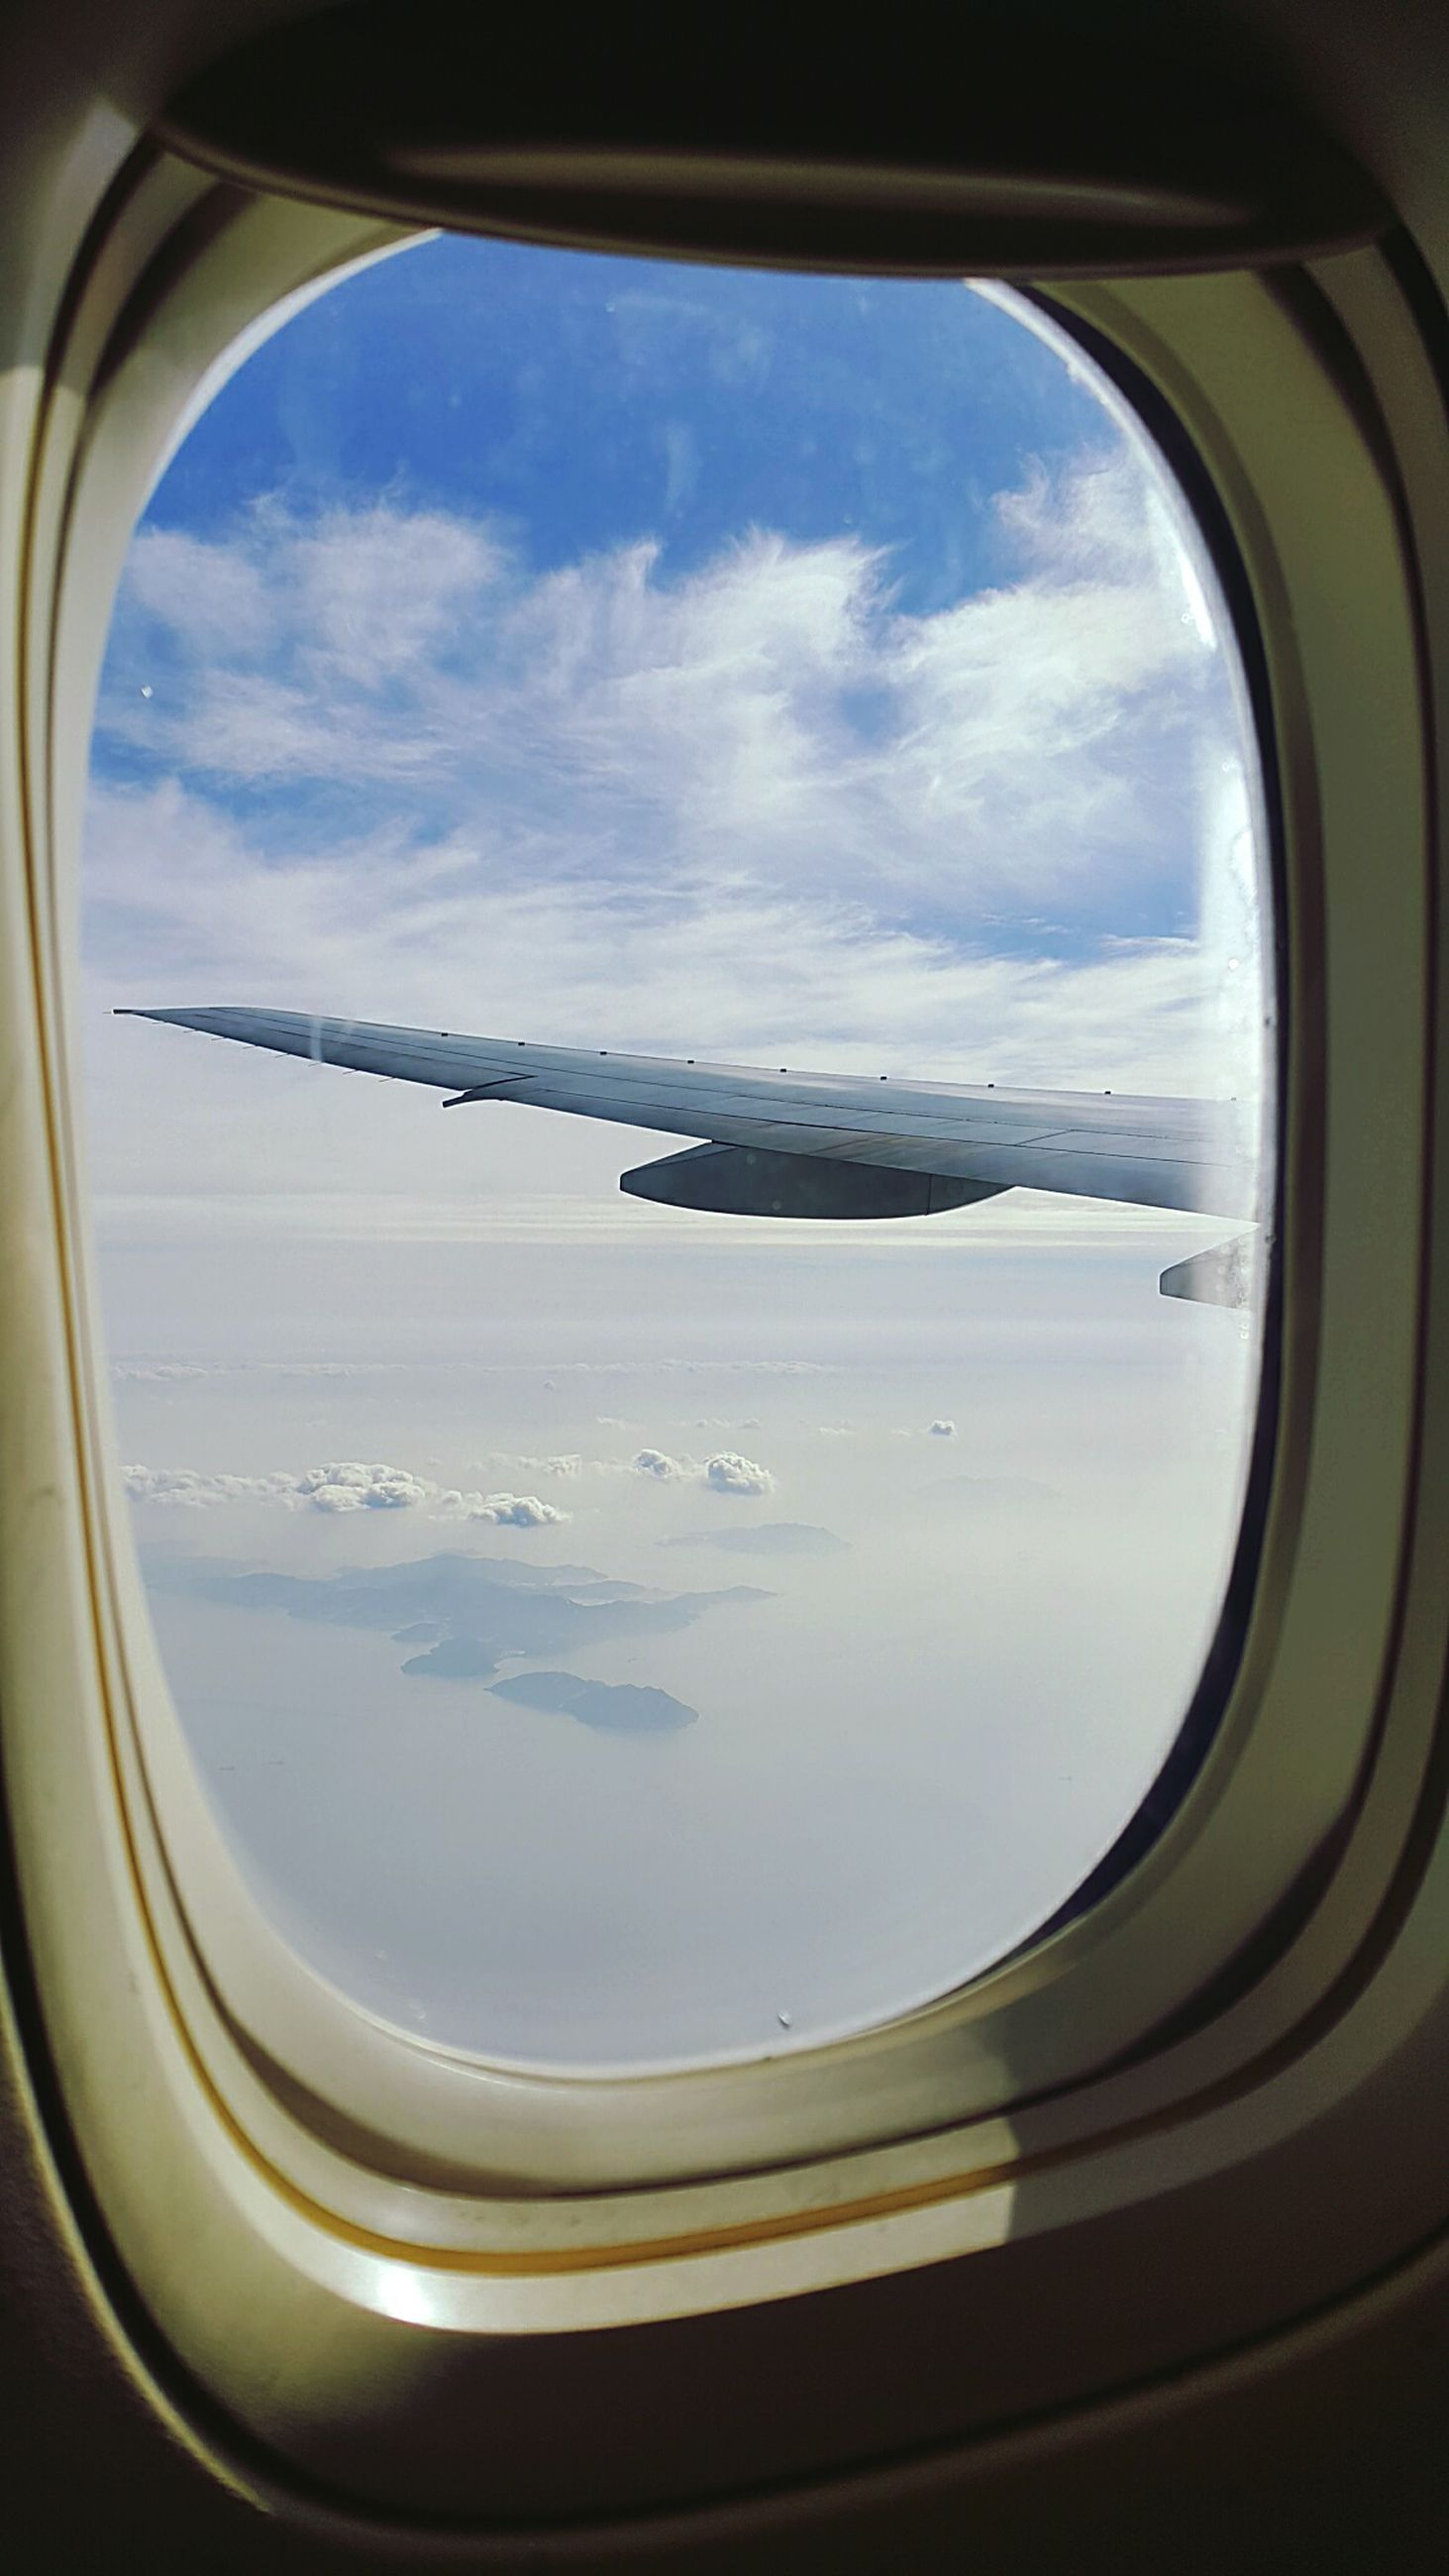 window, vehicle interior, transportation, airplane, mode of transport, air vehicle, sky, transparent, glass - material, indoors, cloud - sky, flying, cloud, part of, looking through window, public transportation, travel, journey, cropped, day